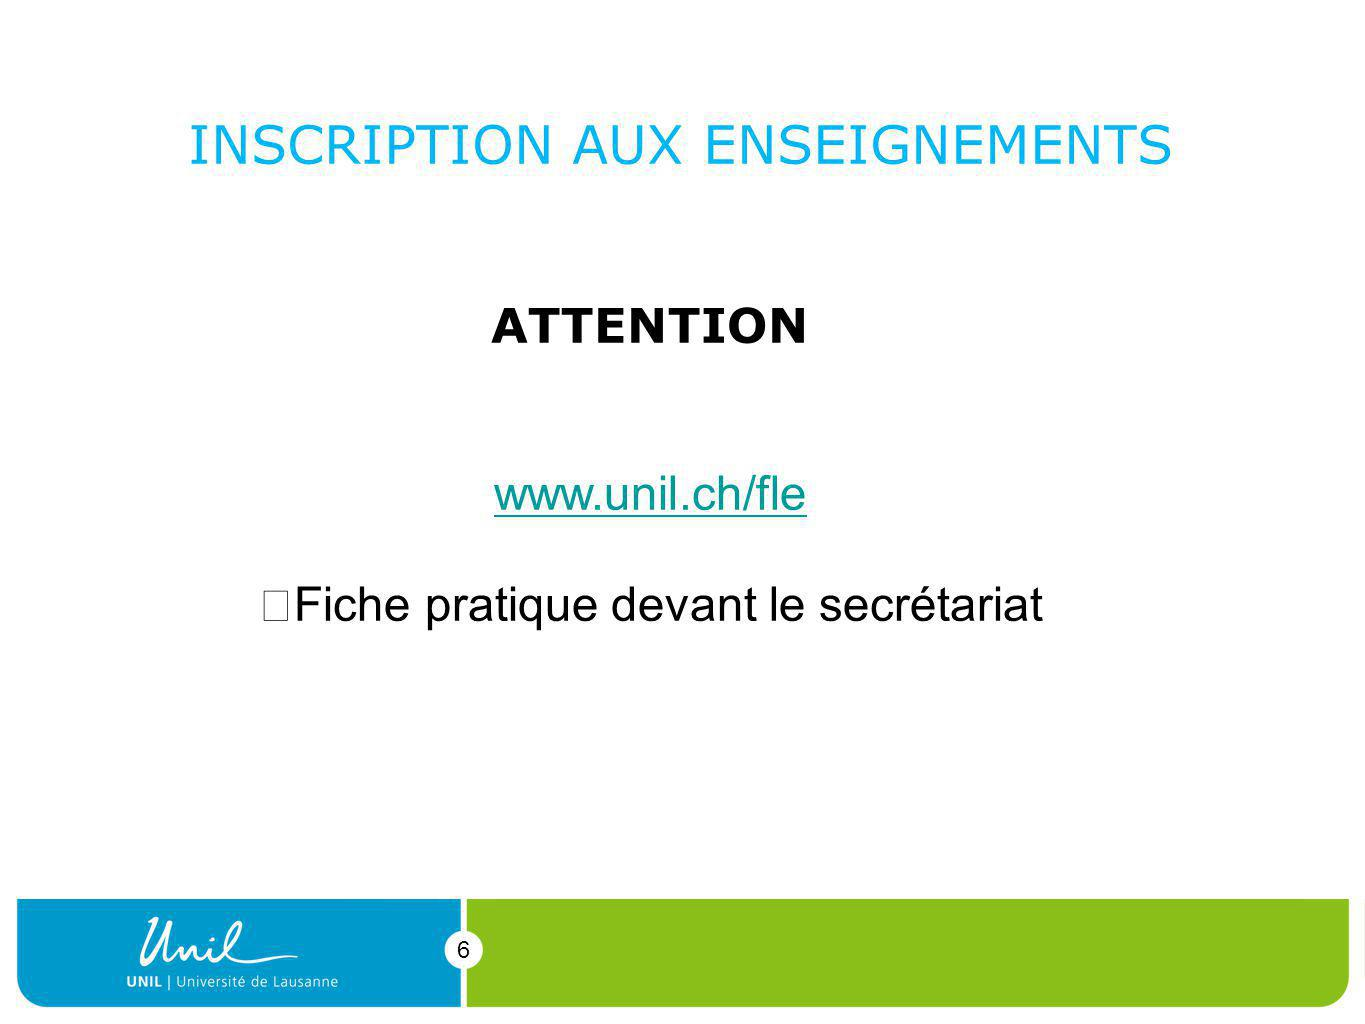 6 INSCRIPTION AUX ENSEIGNEMENTS 6 ATTENTION Inscription online obligatoire www.unil.ch/fle Fiche pratique devant le secrétariat